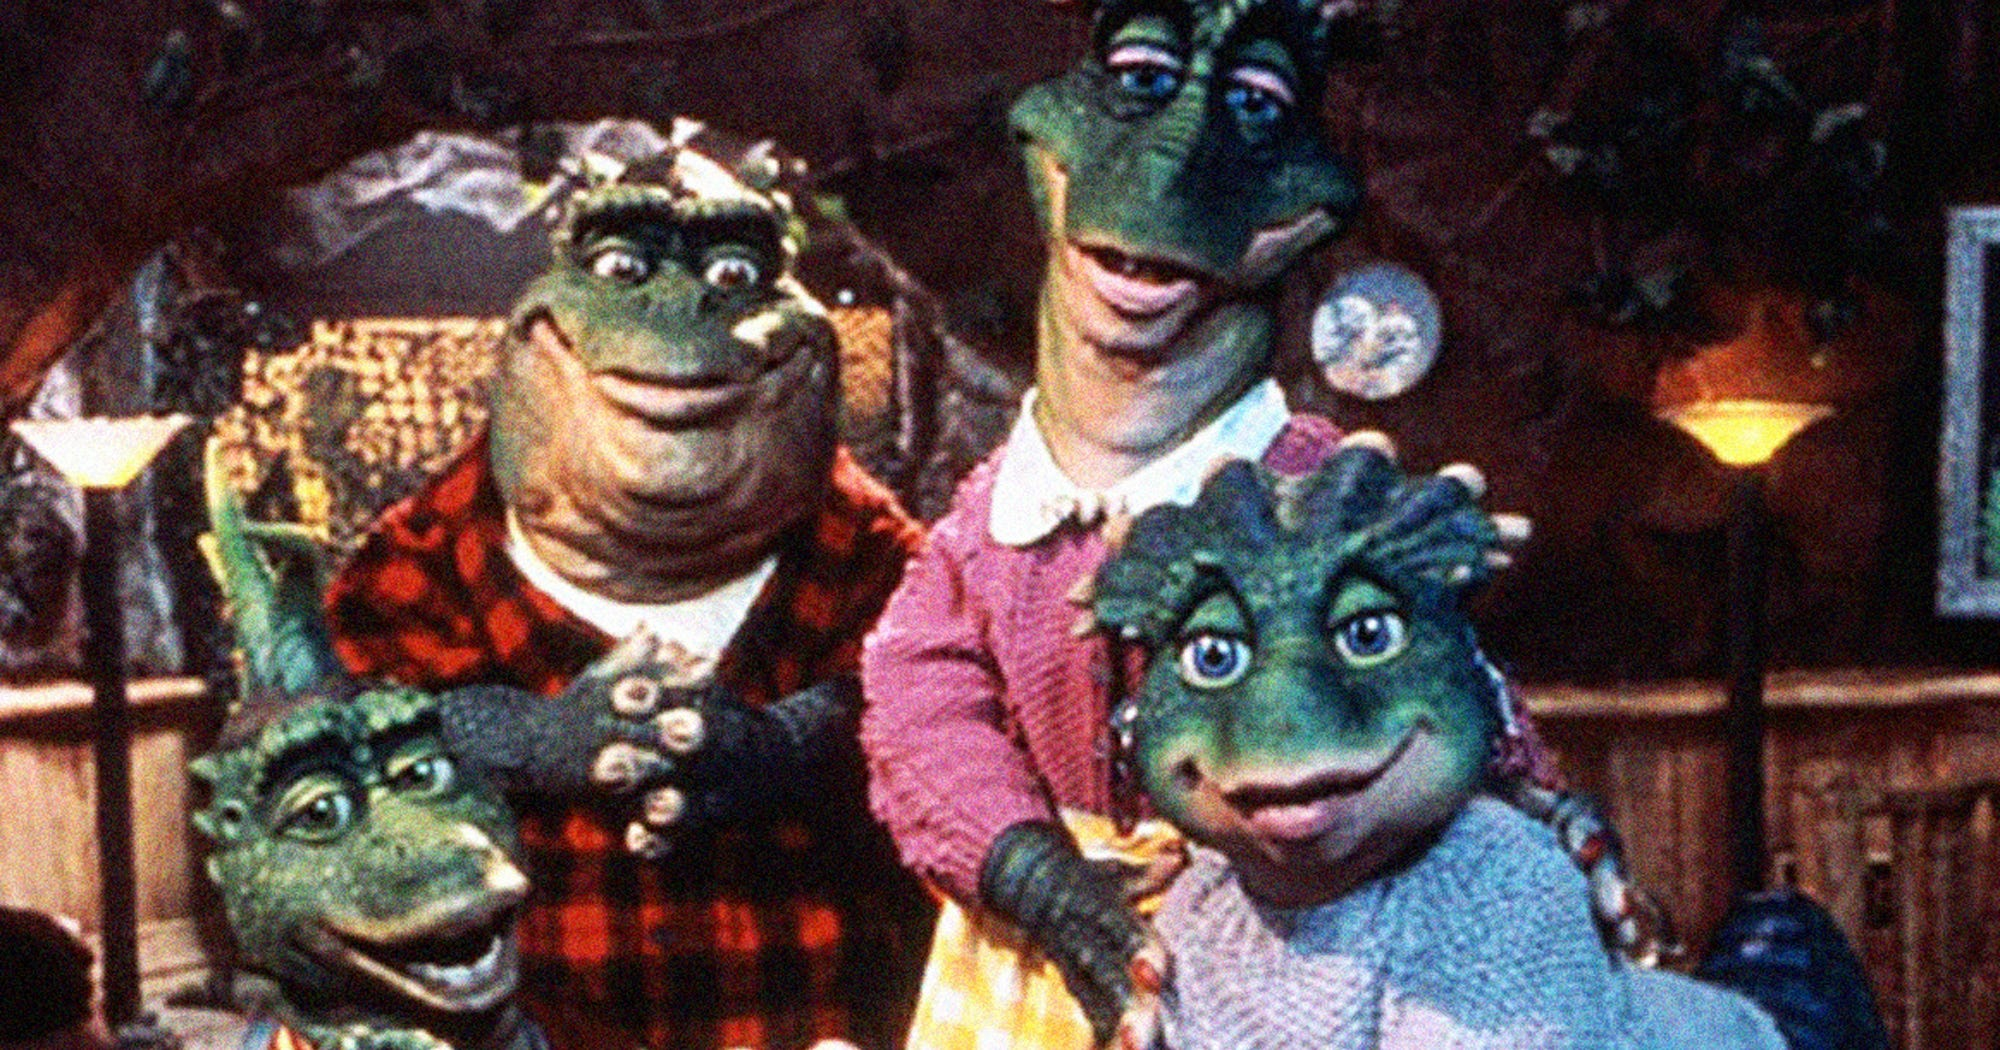 Dinosaurs The Show Images Hd Wallpaper And Background Photos